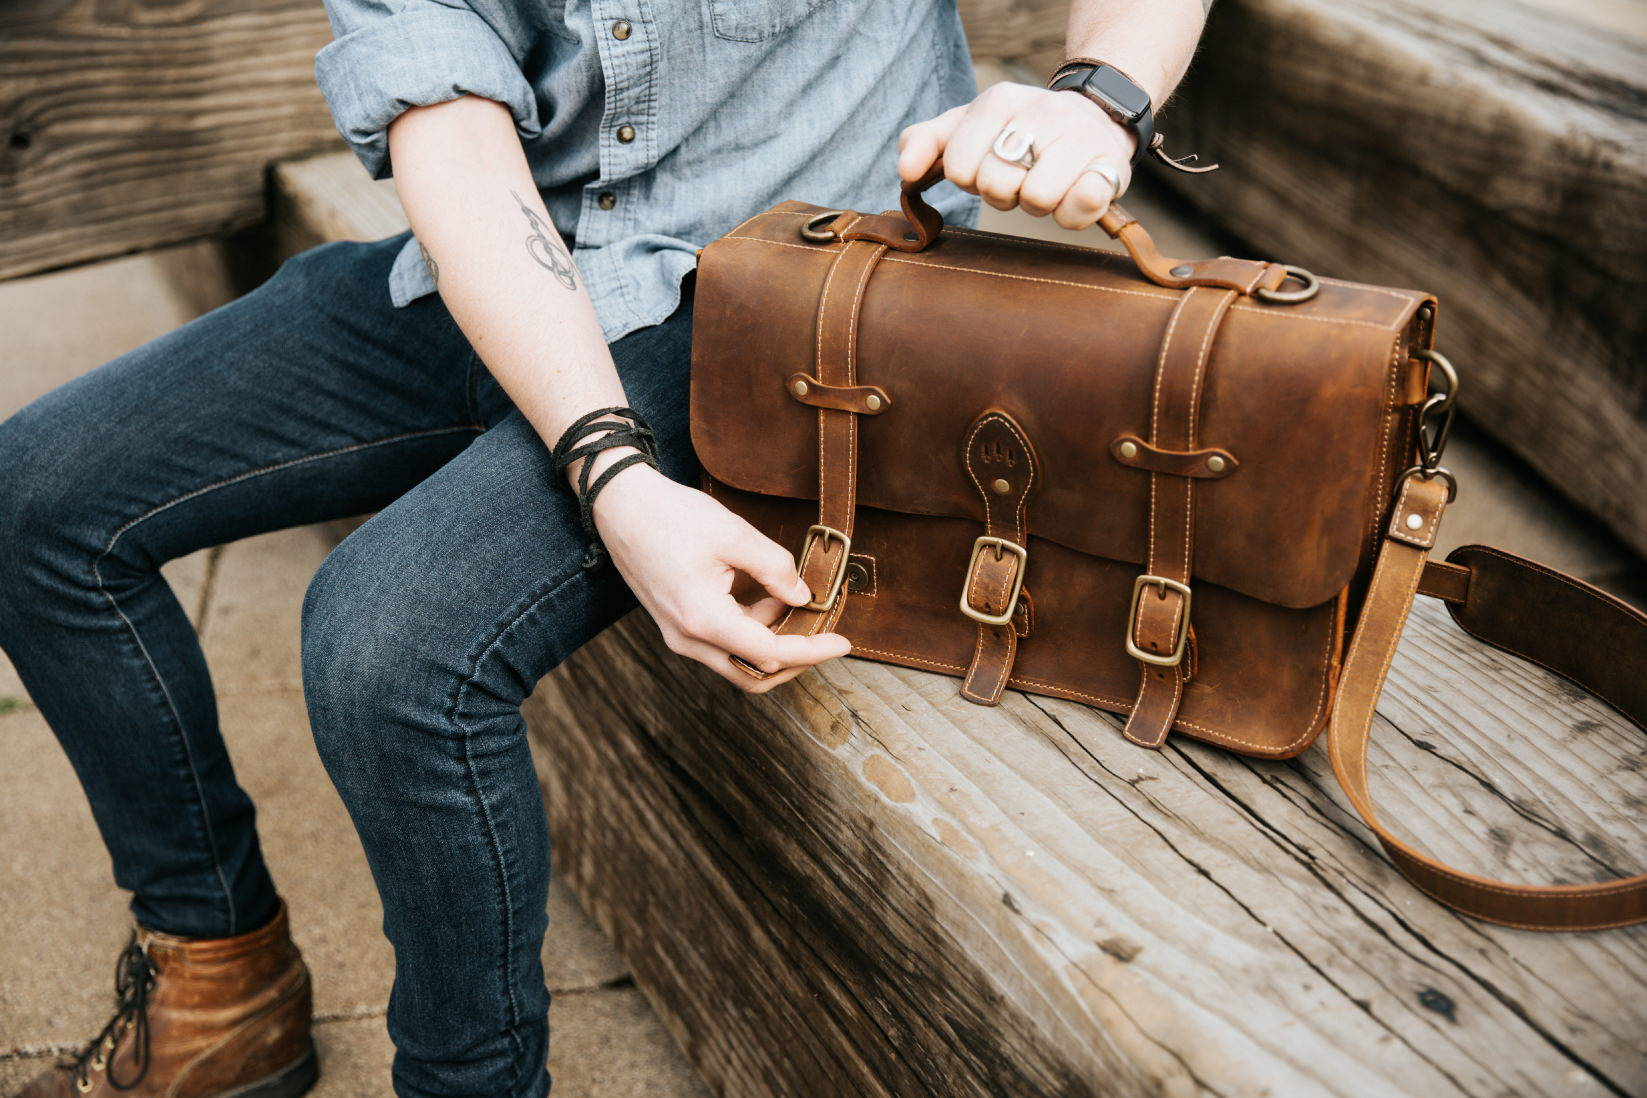 man unbuckling leather messenger bag